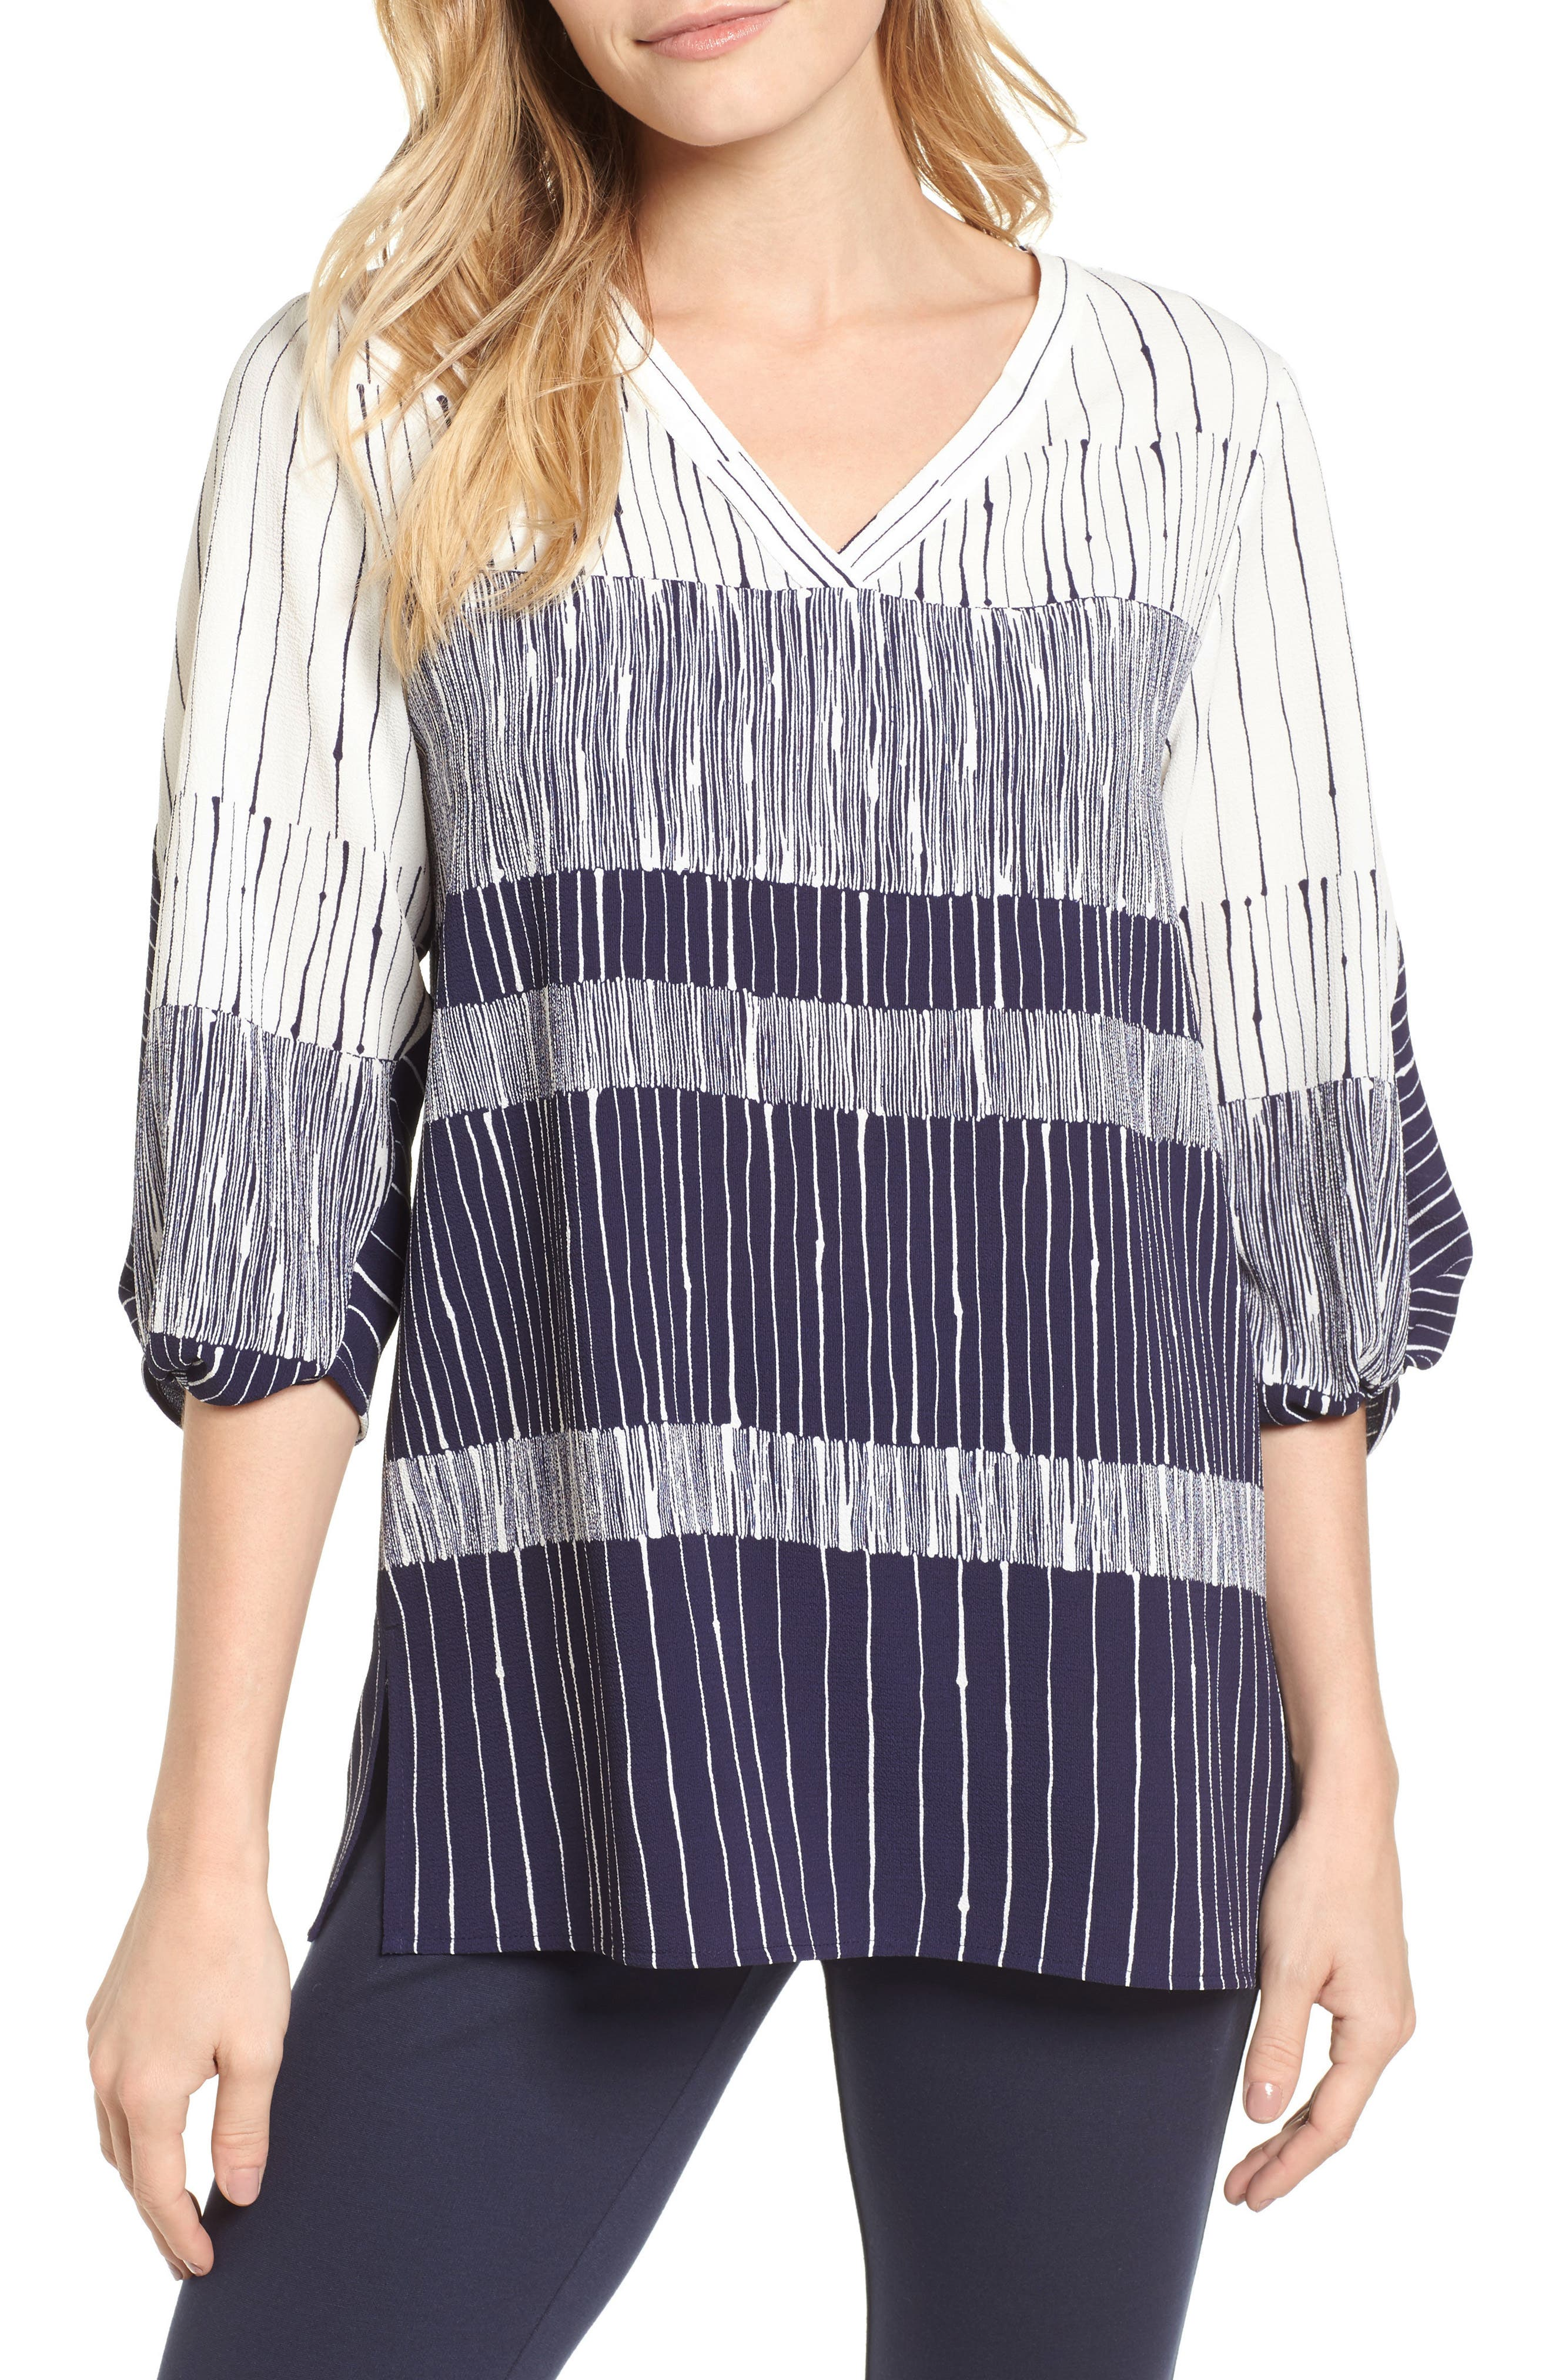 Ink Lines Blouse,                         Main,                         color, 529-Evening Navy